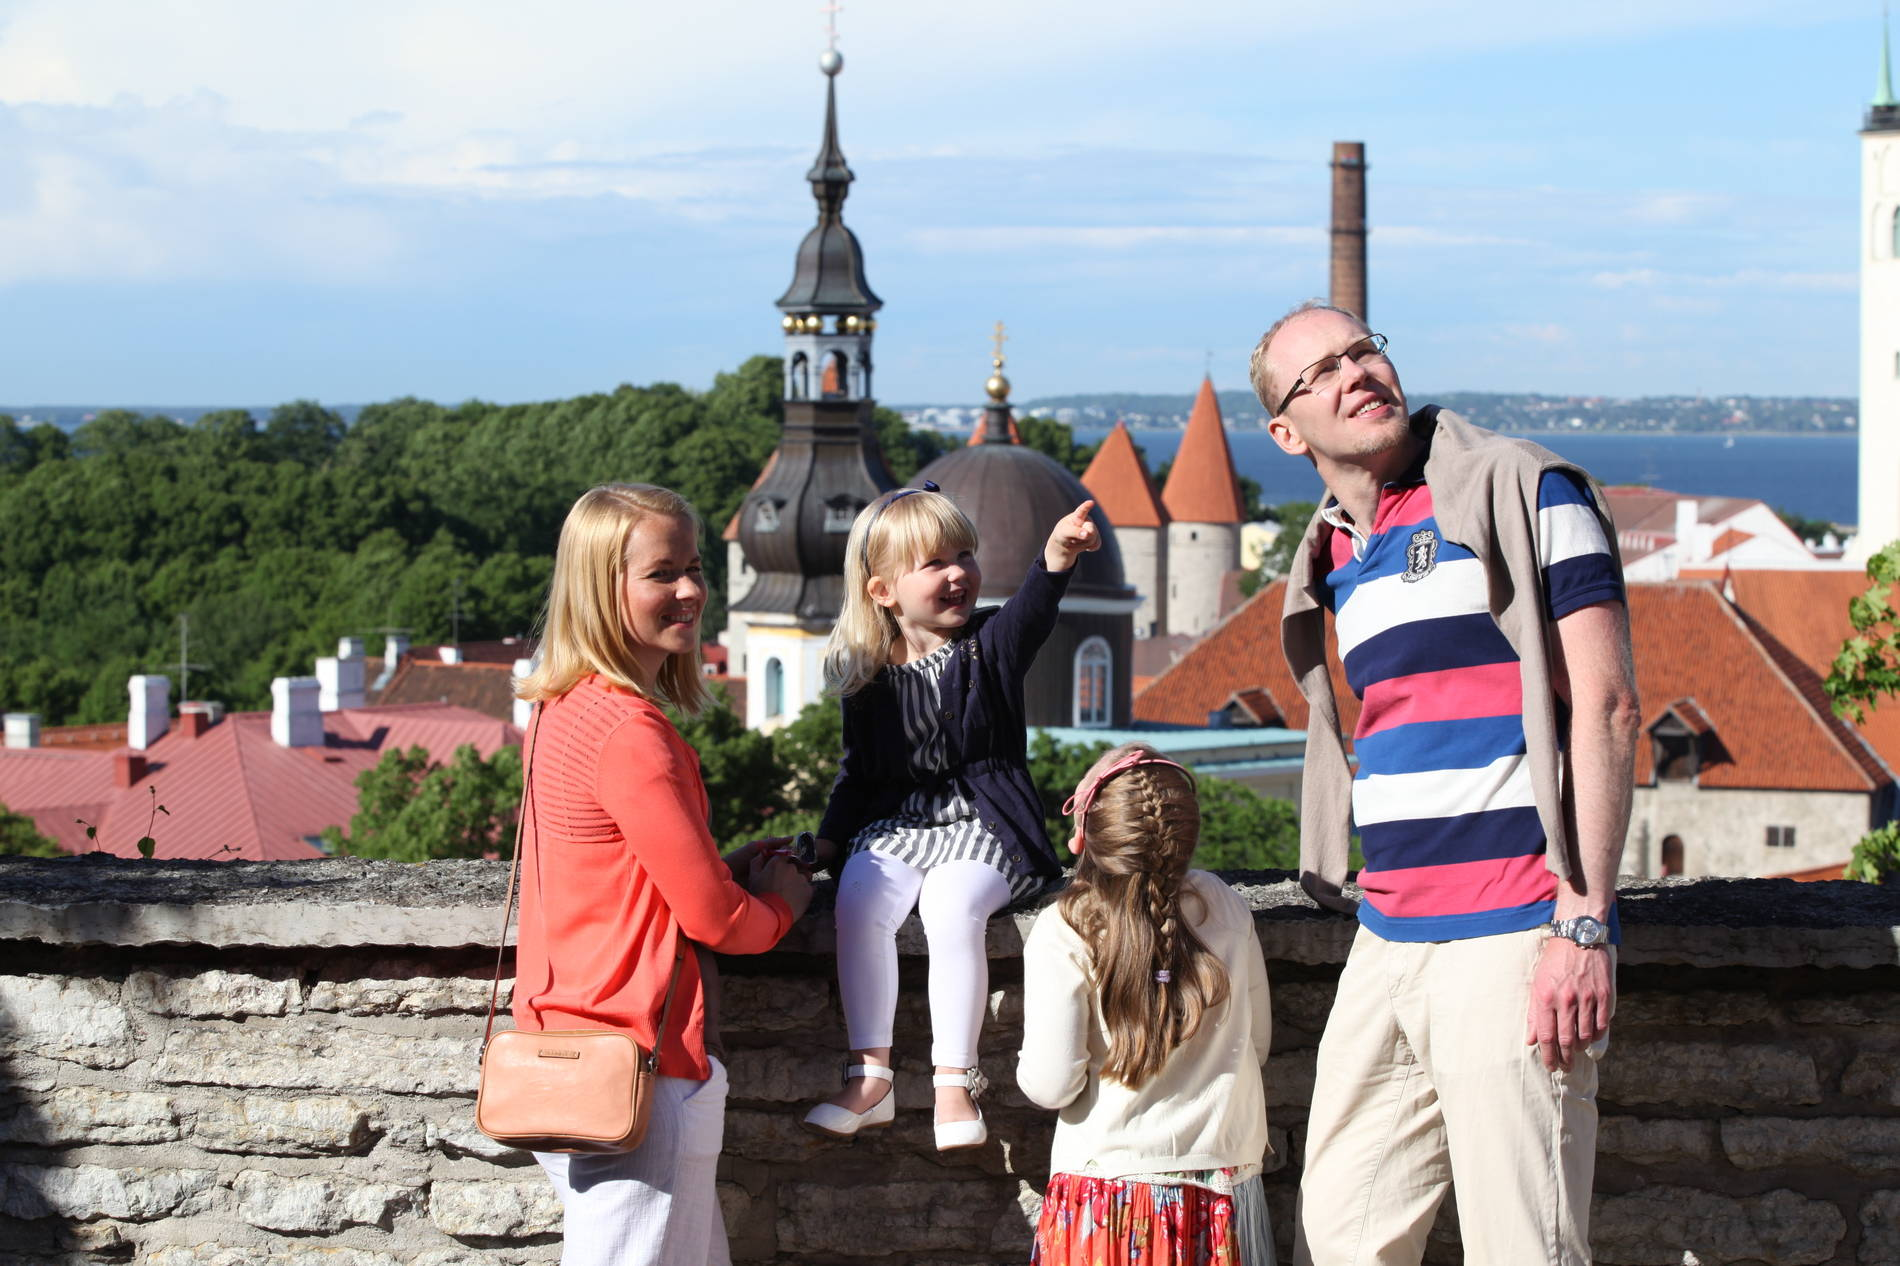 Family at the viewing platform in the Old Town of Tallinn, Estonia.